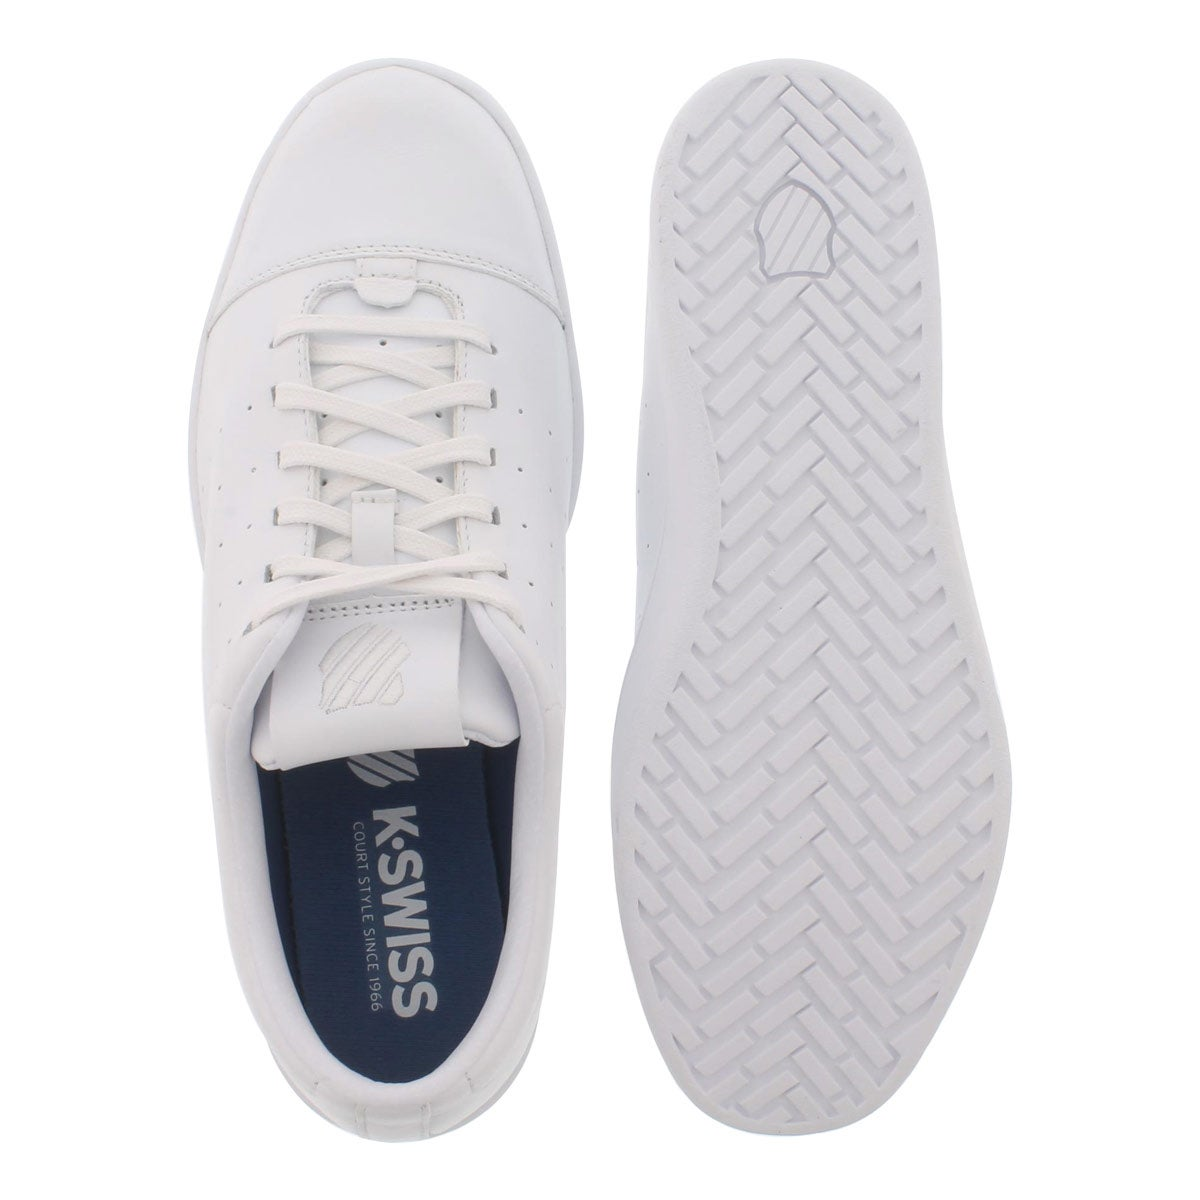 Mns Washburn white fashion sneaker